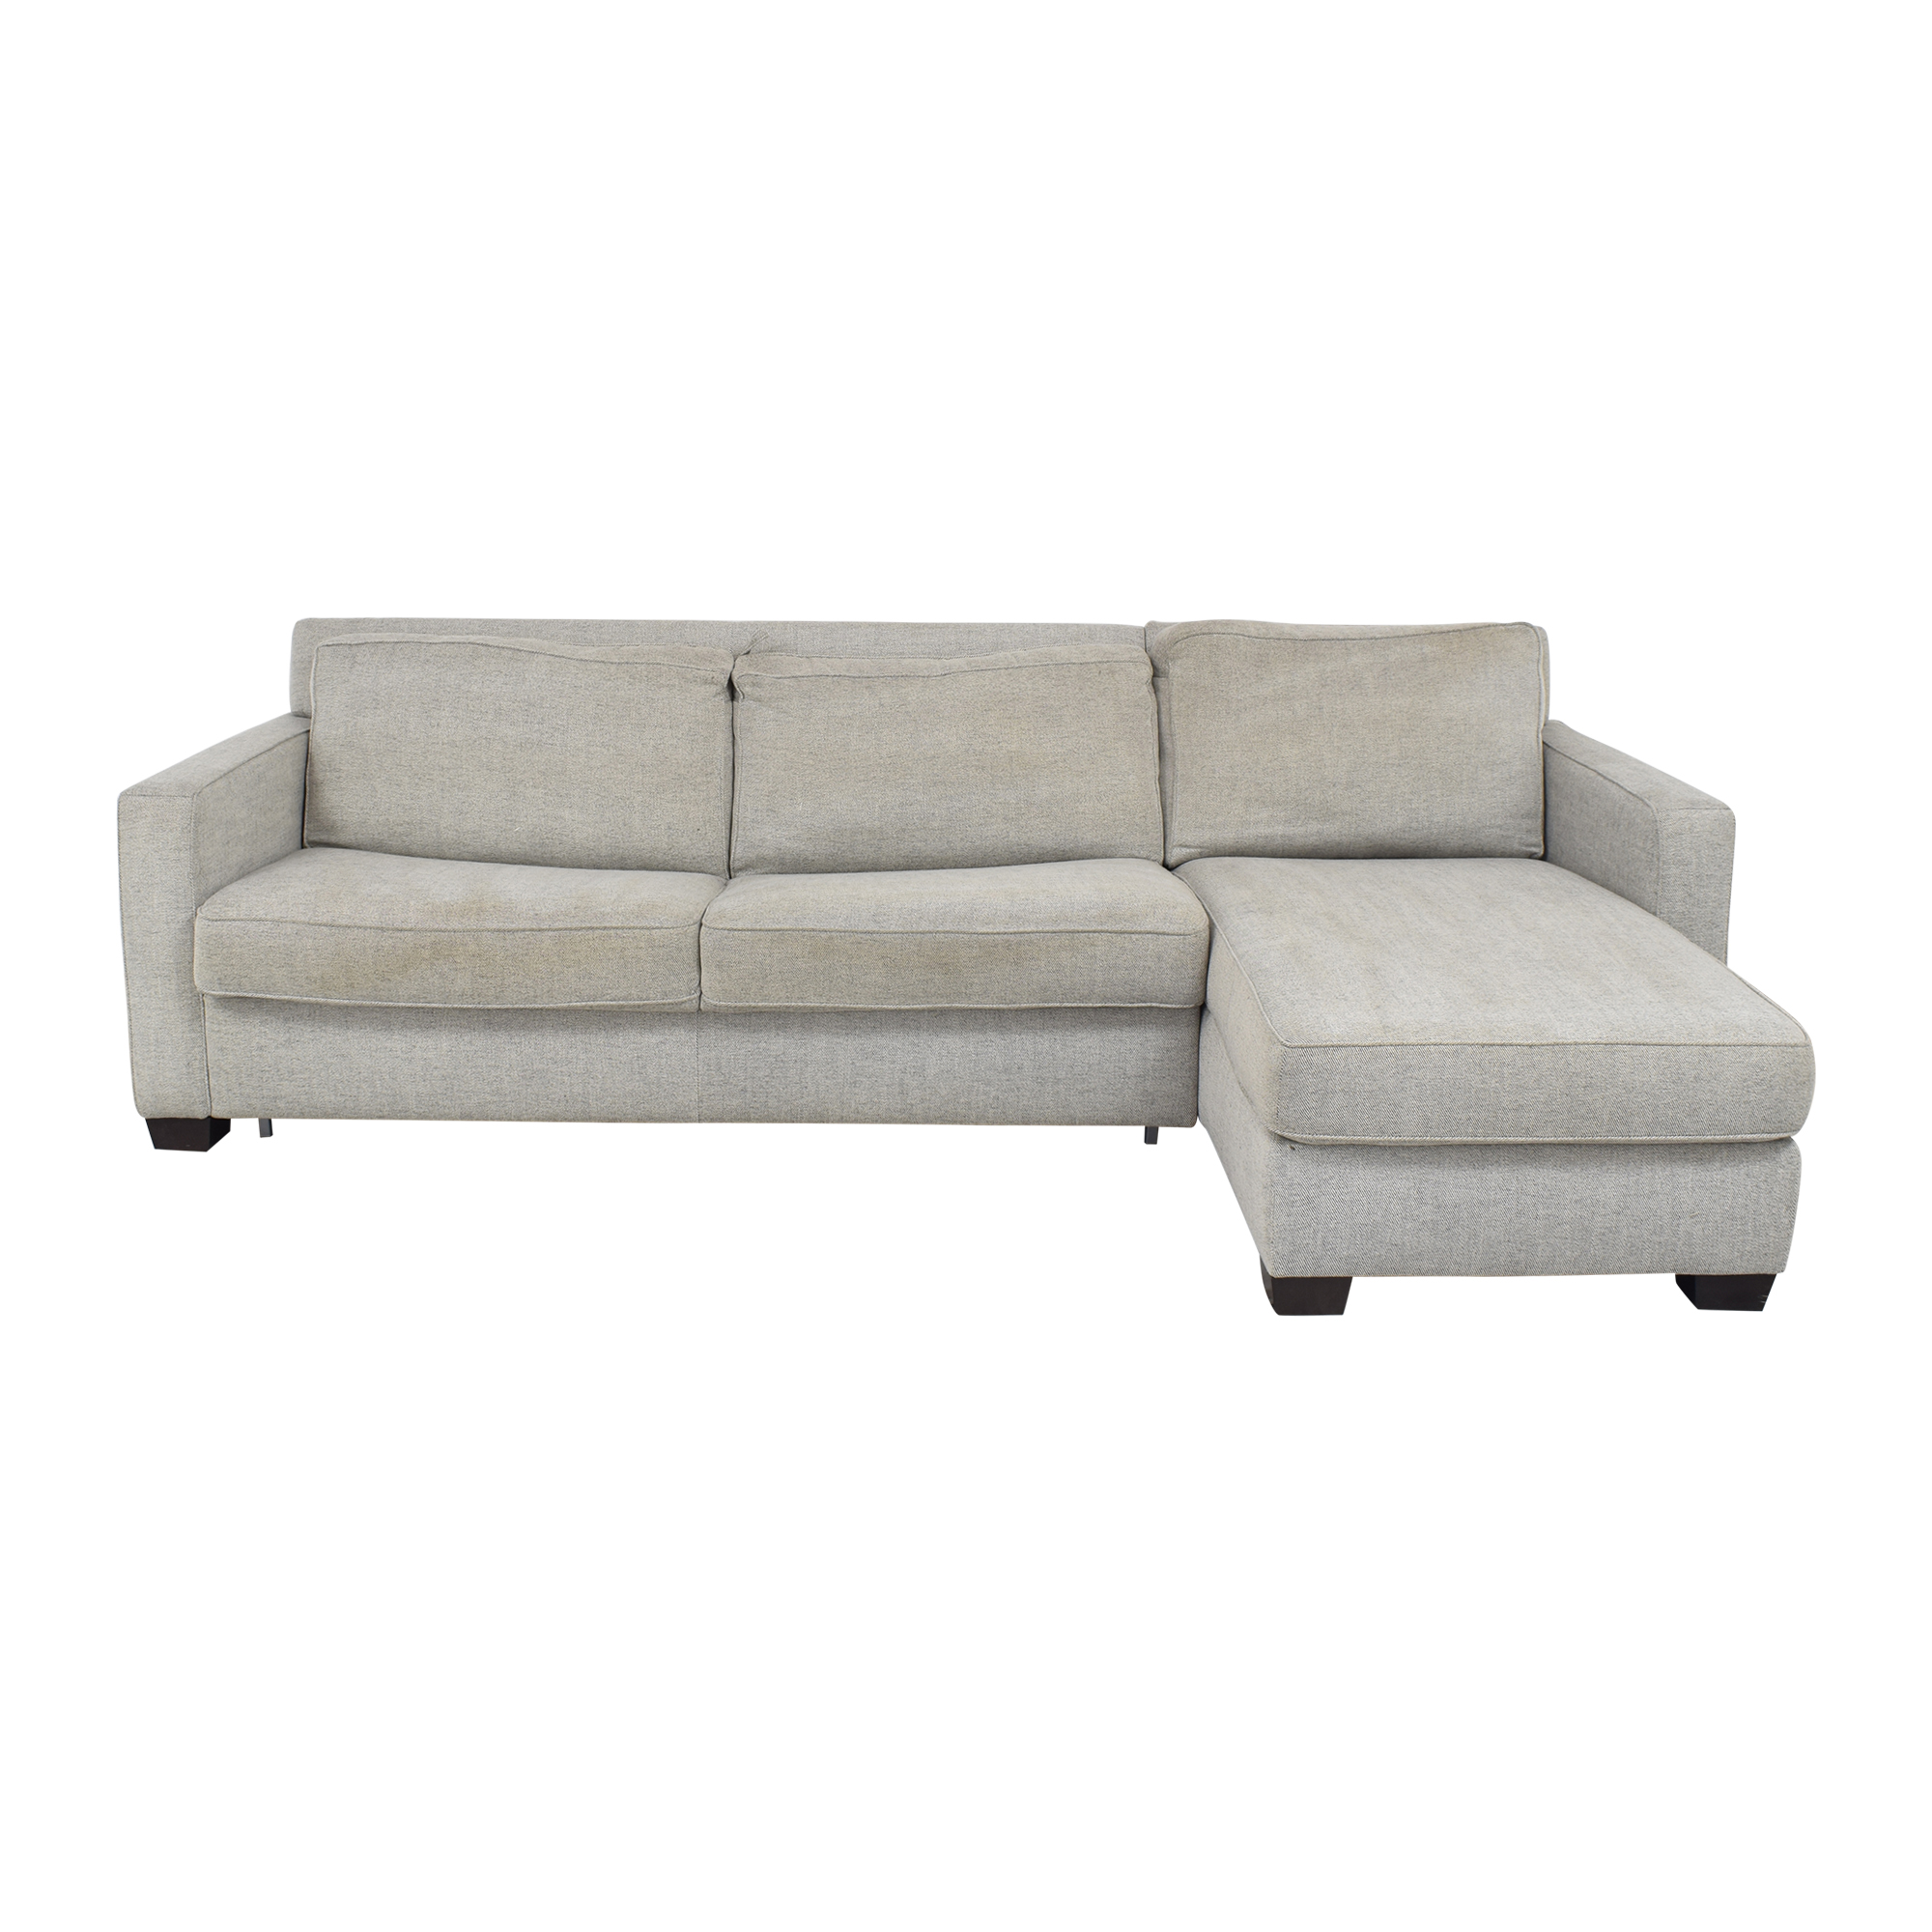 West Elm West Elm Henry Two Piece Full Sleeper Sectional Sofa with Storage ct